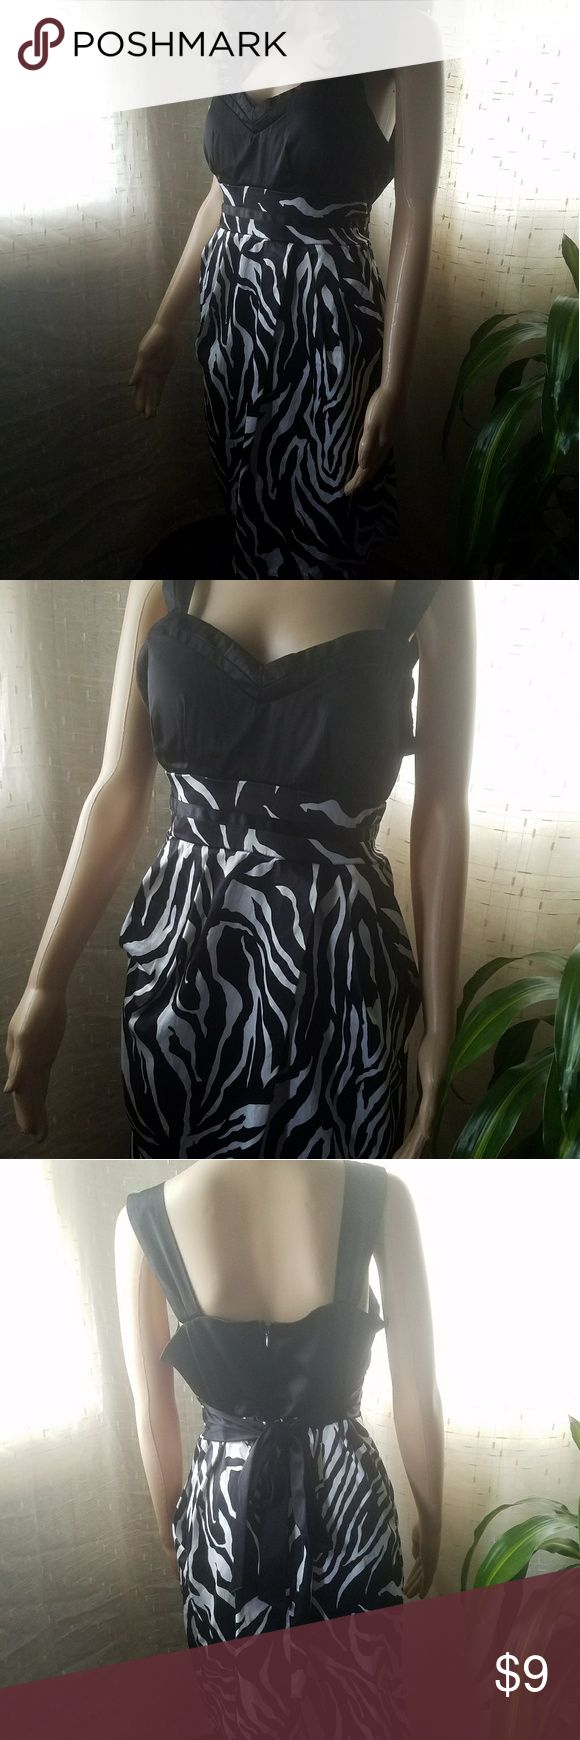 Animal Print Tie Back Dress Size 13/14 Black & White Satin Feel Animal Print Dress. Zip up back w/hook closure and pockets on sides. Item#EUC96 *ALL CLOTHING IS NWT/NWOT/GENTLY USED* EACH ITEM HAS BEEN CHECKED FOR DAMAGE. IF ANY ITEM IS DAMAGED, IT WILL BE SHOWN AND NOTED. 25% OFF BUNDLES OF 3 OR MORE ITEMS! *ALL REASONABLE OFFERS ACCEPTED* BUY WITH CONFIDENCE~TOP 10% SELLER, FAST SHIPPING, 5 STAR RATING, & FREE GIFT(S) w/MOST ORDERS! Maddy Paige Dresses Midi